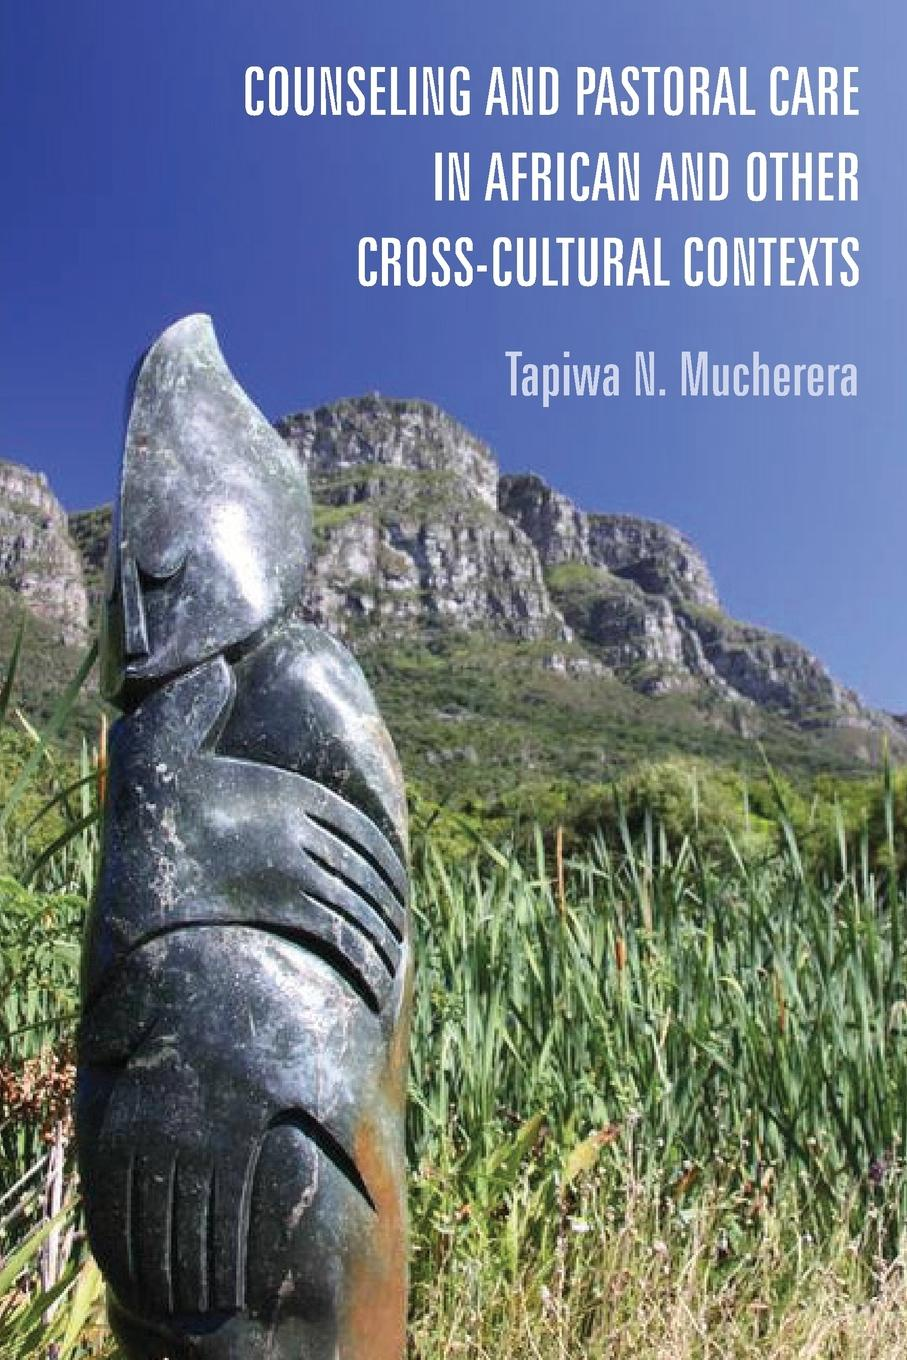 Tapiwa N. Mucherera Counseling and Pastoral Care in African and Other Cross-Cultural Contexts john igbino the meanings of inclusion in cross cultural contexts